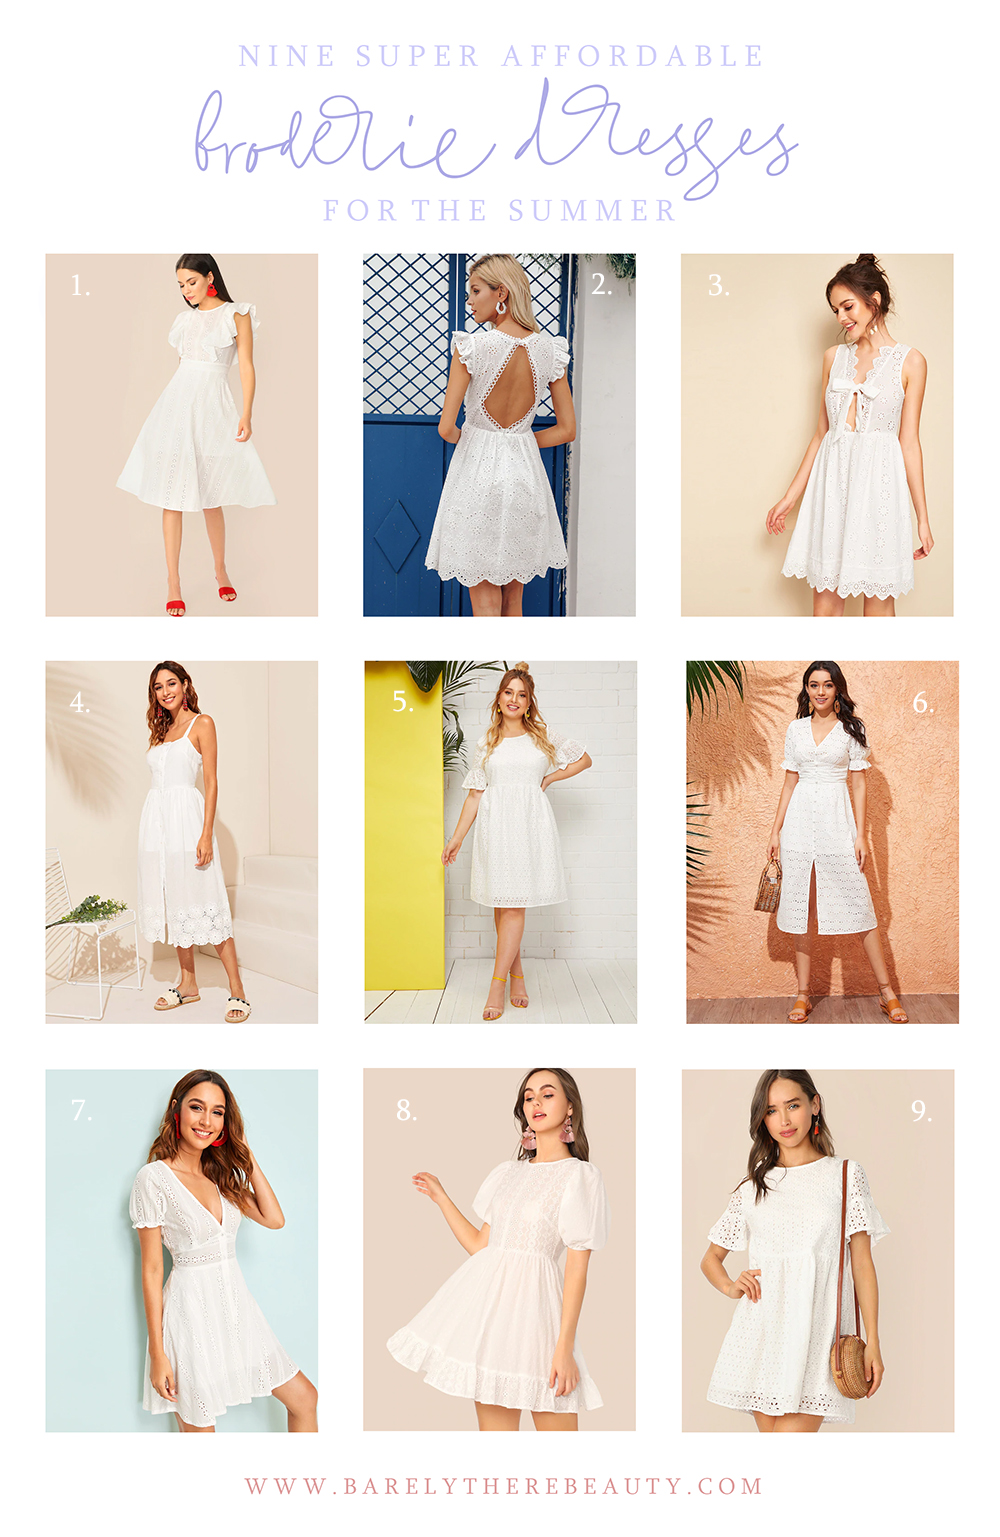 affordable-broderie-dresses-ootd-classic-style-fashion